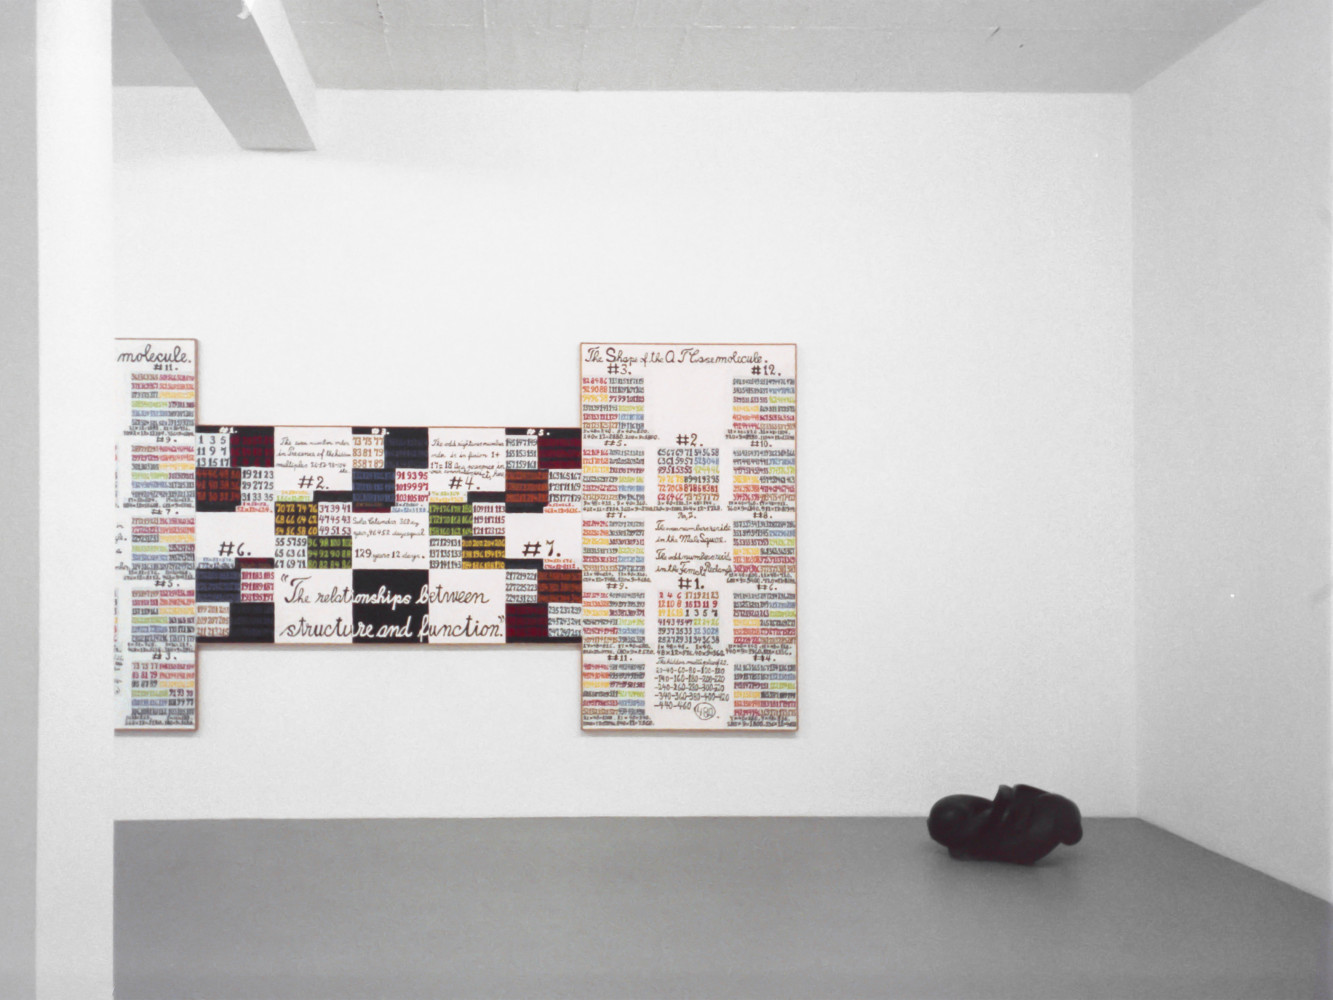 'Alfred Jensen – The Relationship between Structure and Function ', Installation view, 1997